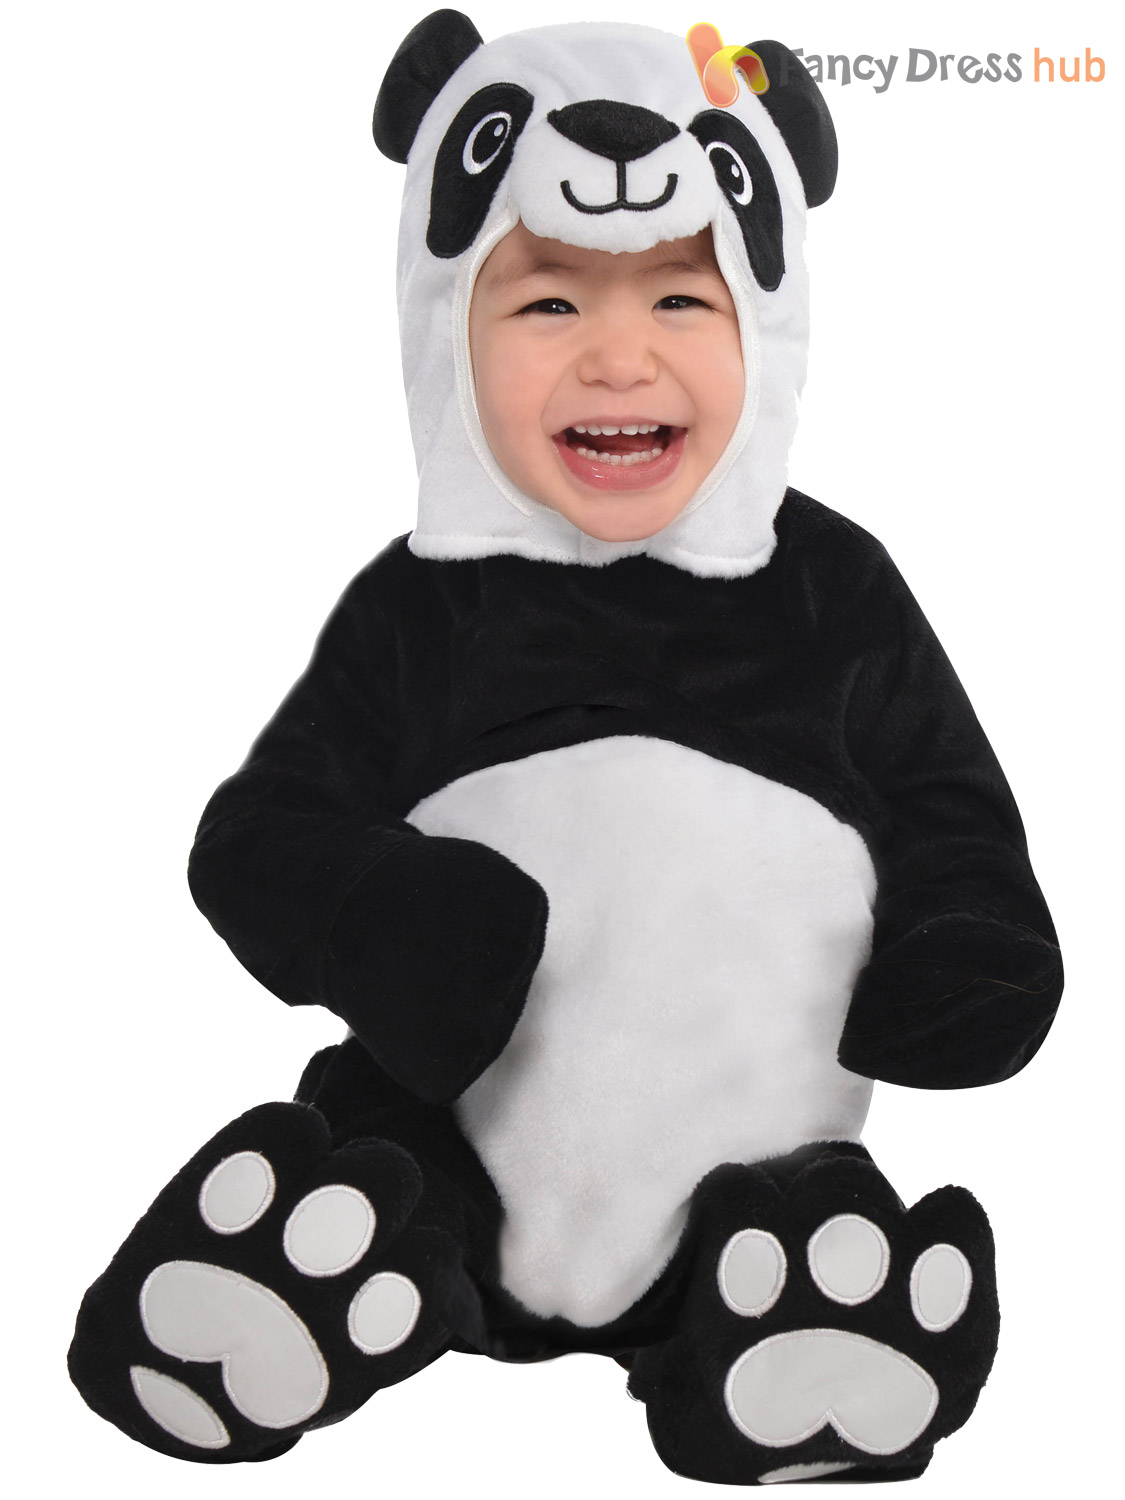 Baby-Toddler-Animal-Costume-Boy-Girl-Zoo-Jungle-Fancy-Dress-Infant-Jumpsuit-Kids thumbnail 24